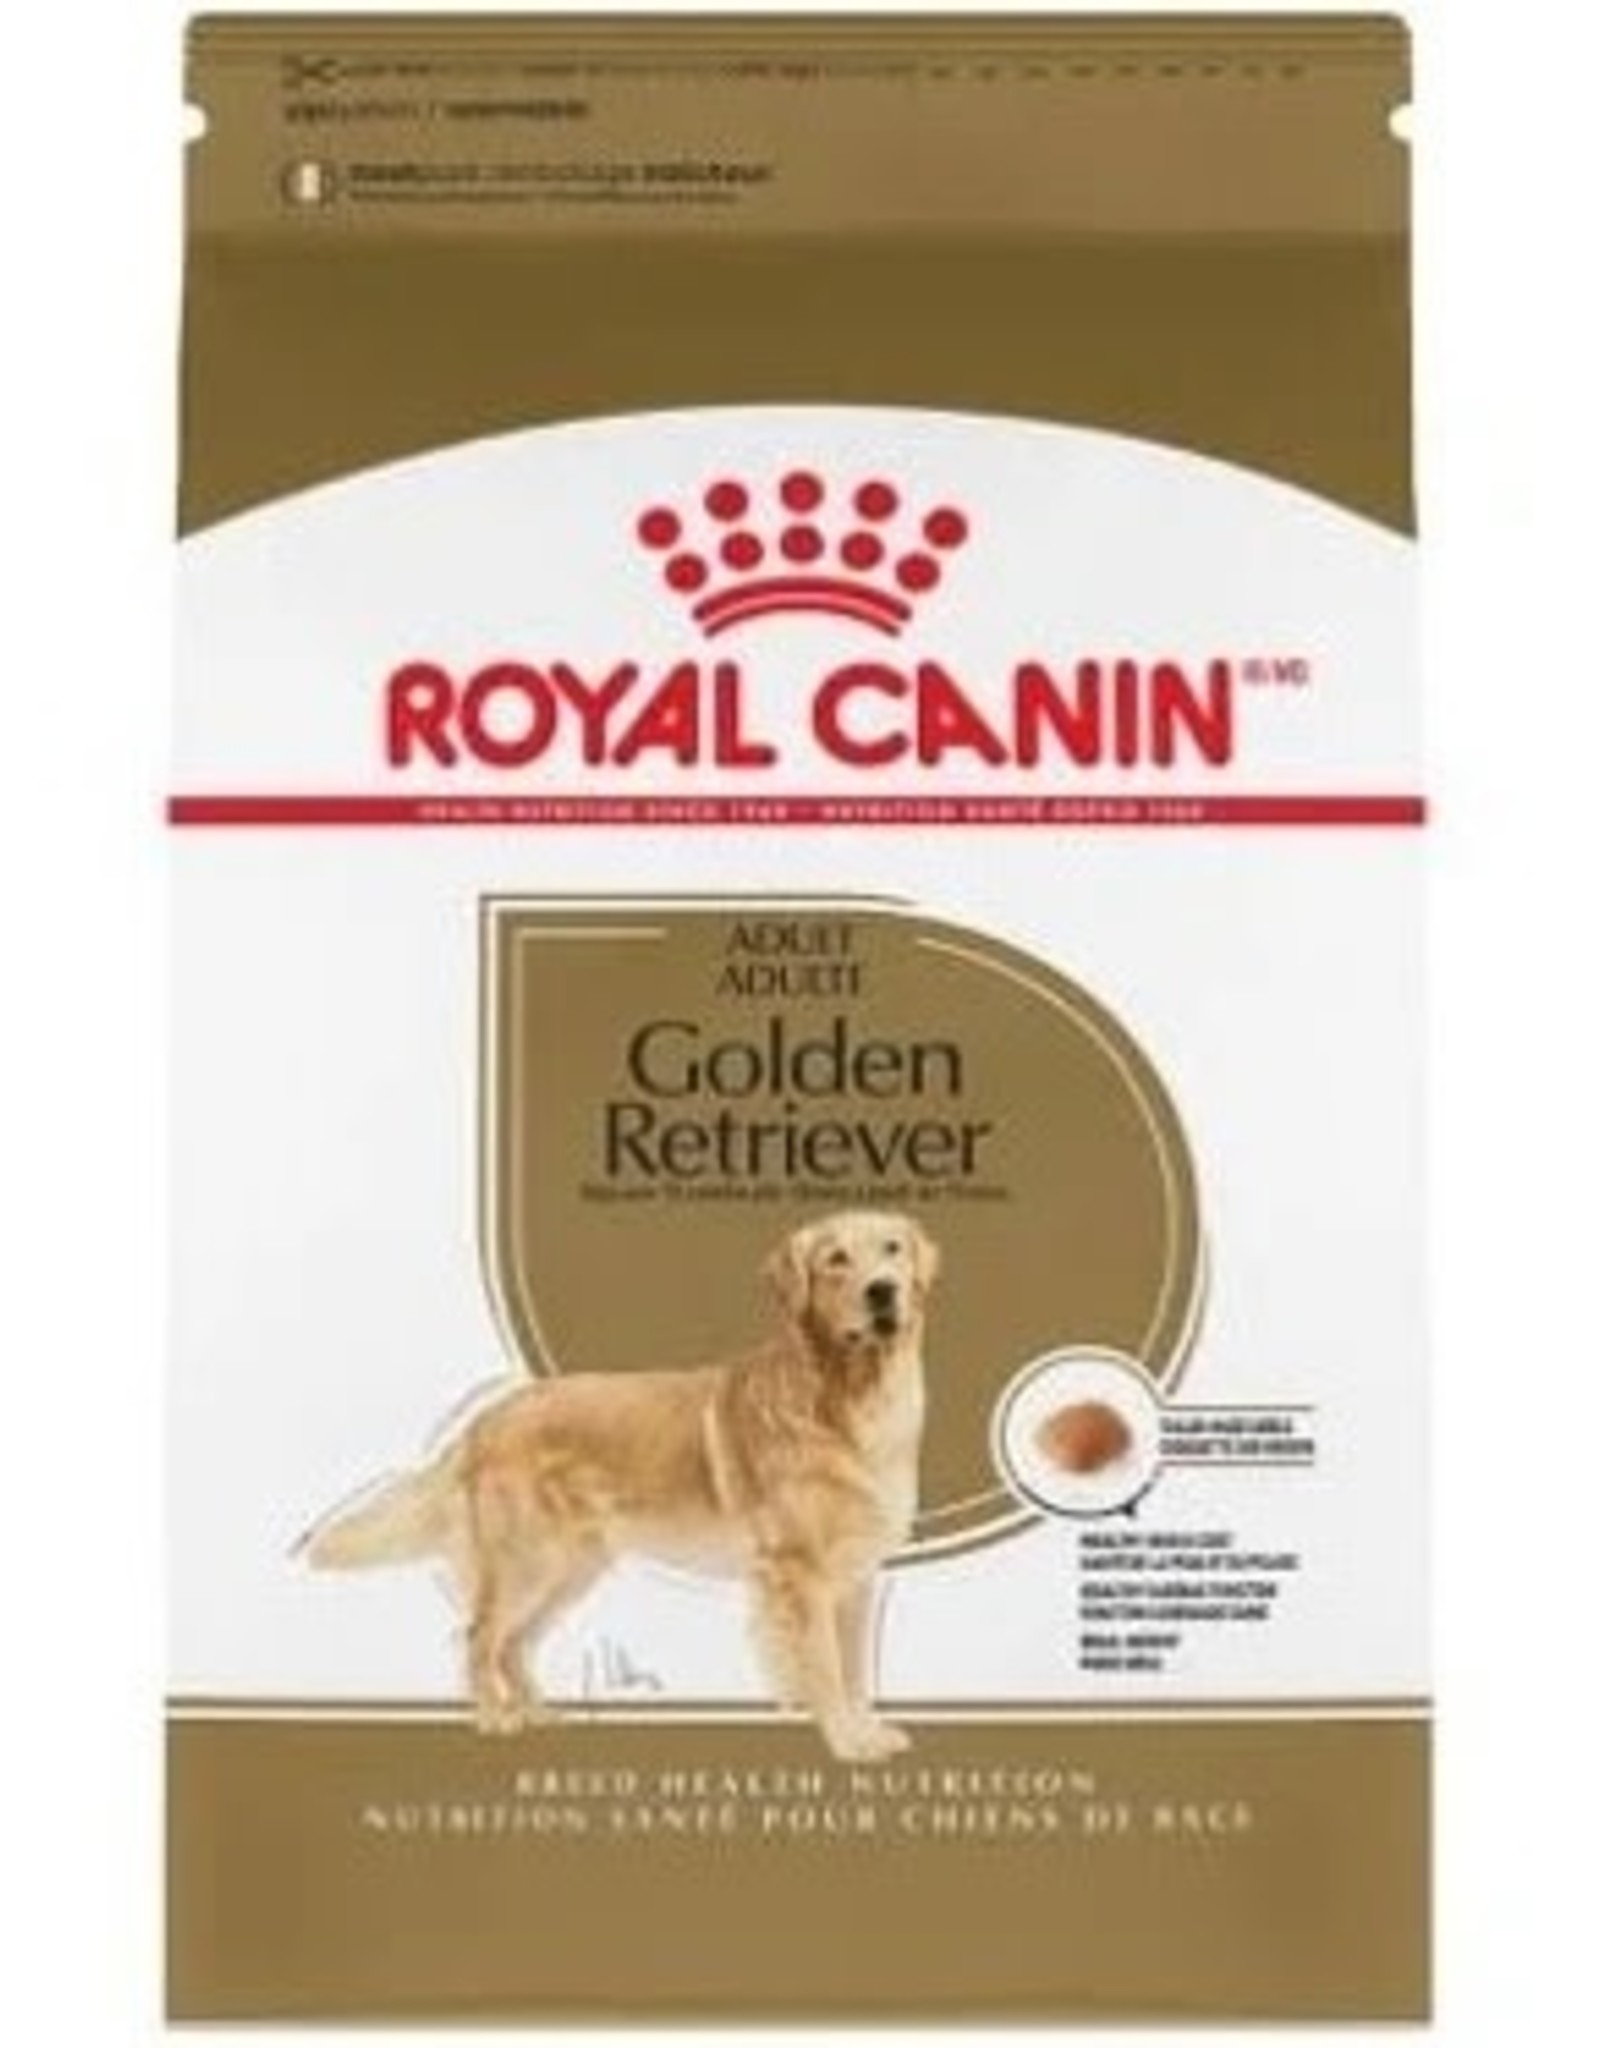 royal canin Royal Canin Golden Retriever 30lb